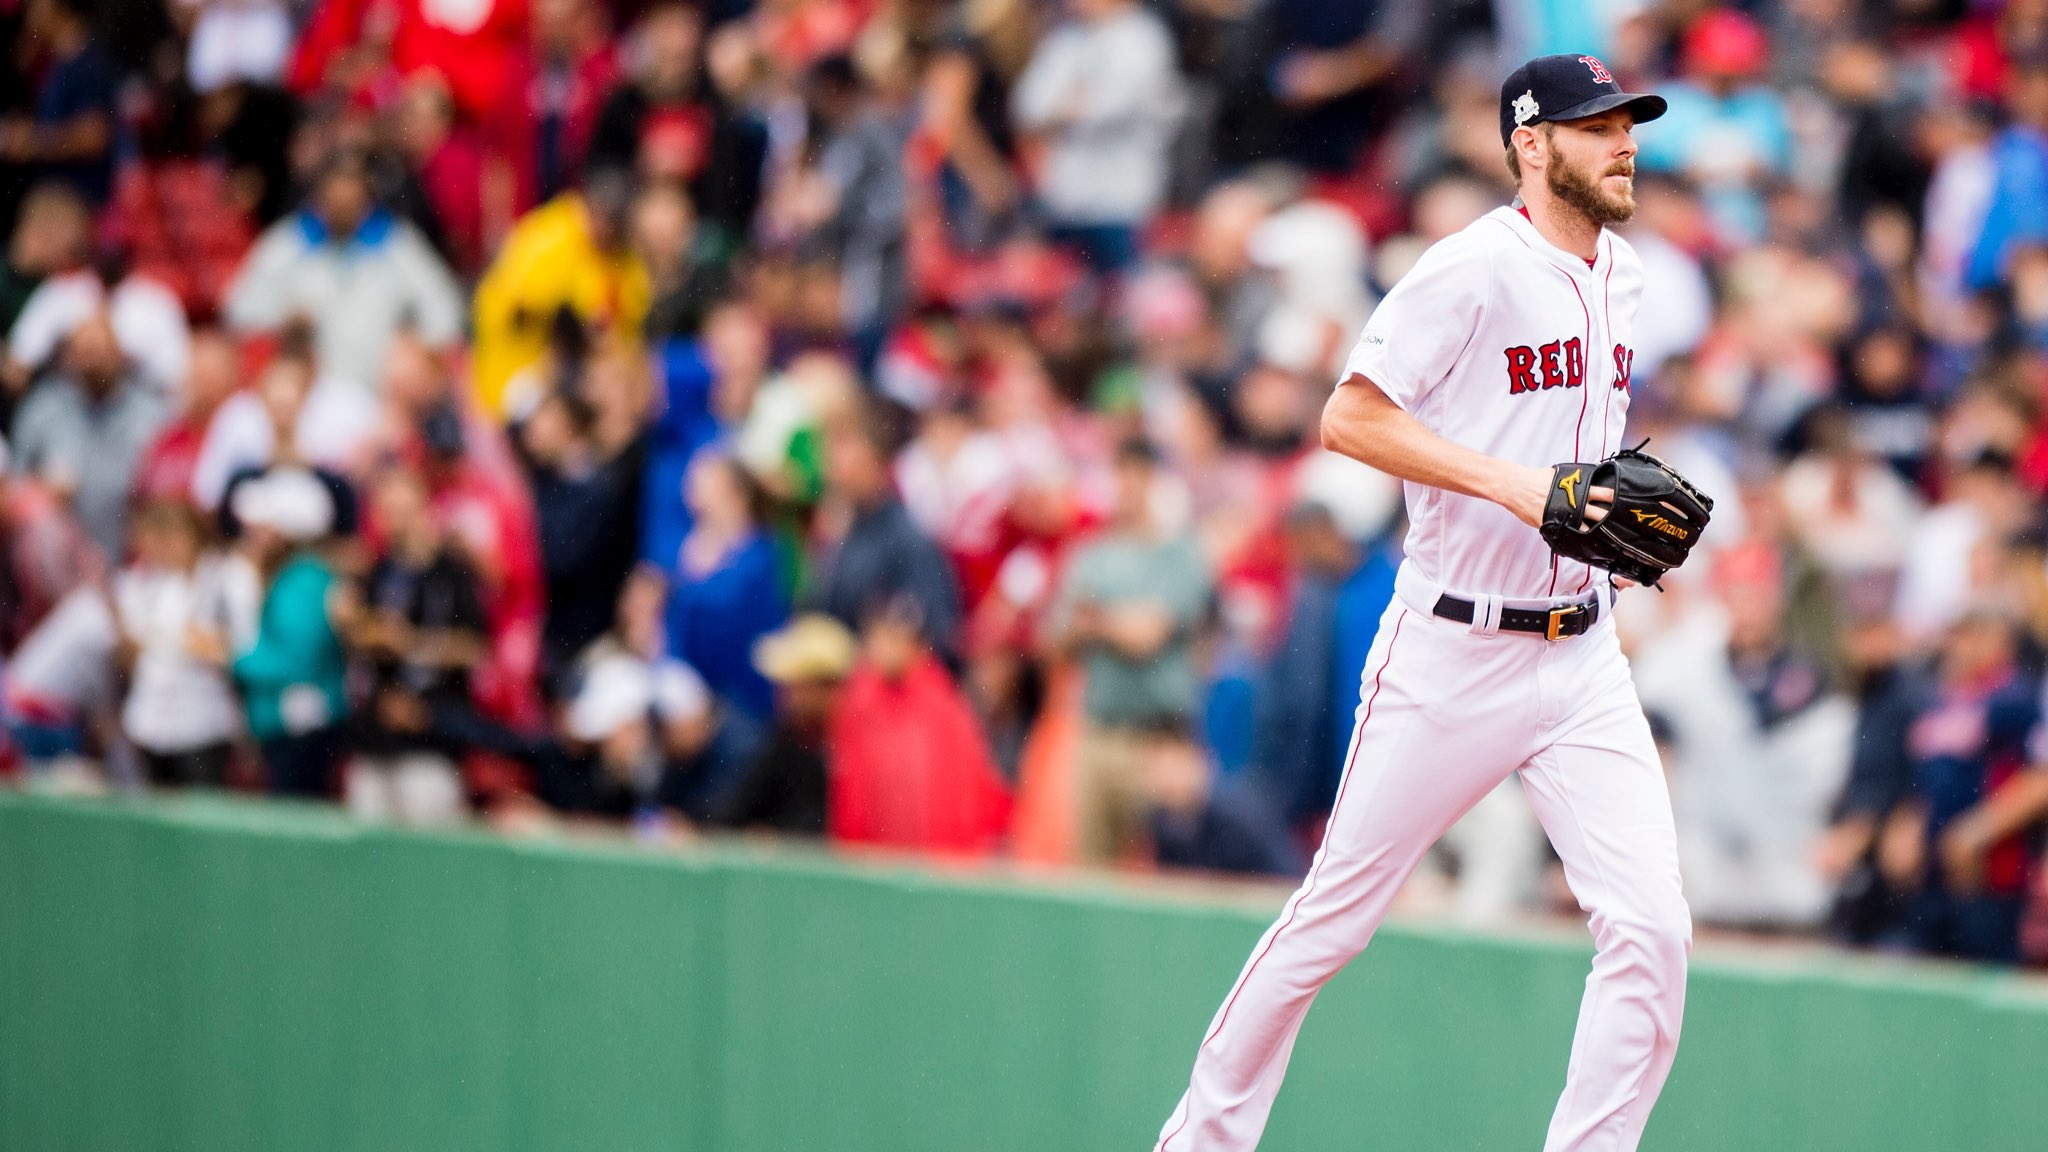 Chris Sale deixa hospital após crise estomacal - The Playoffs